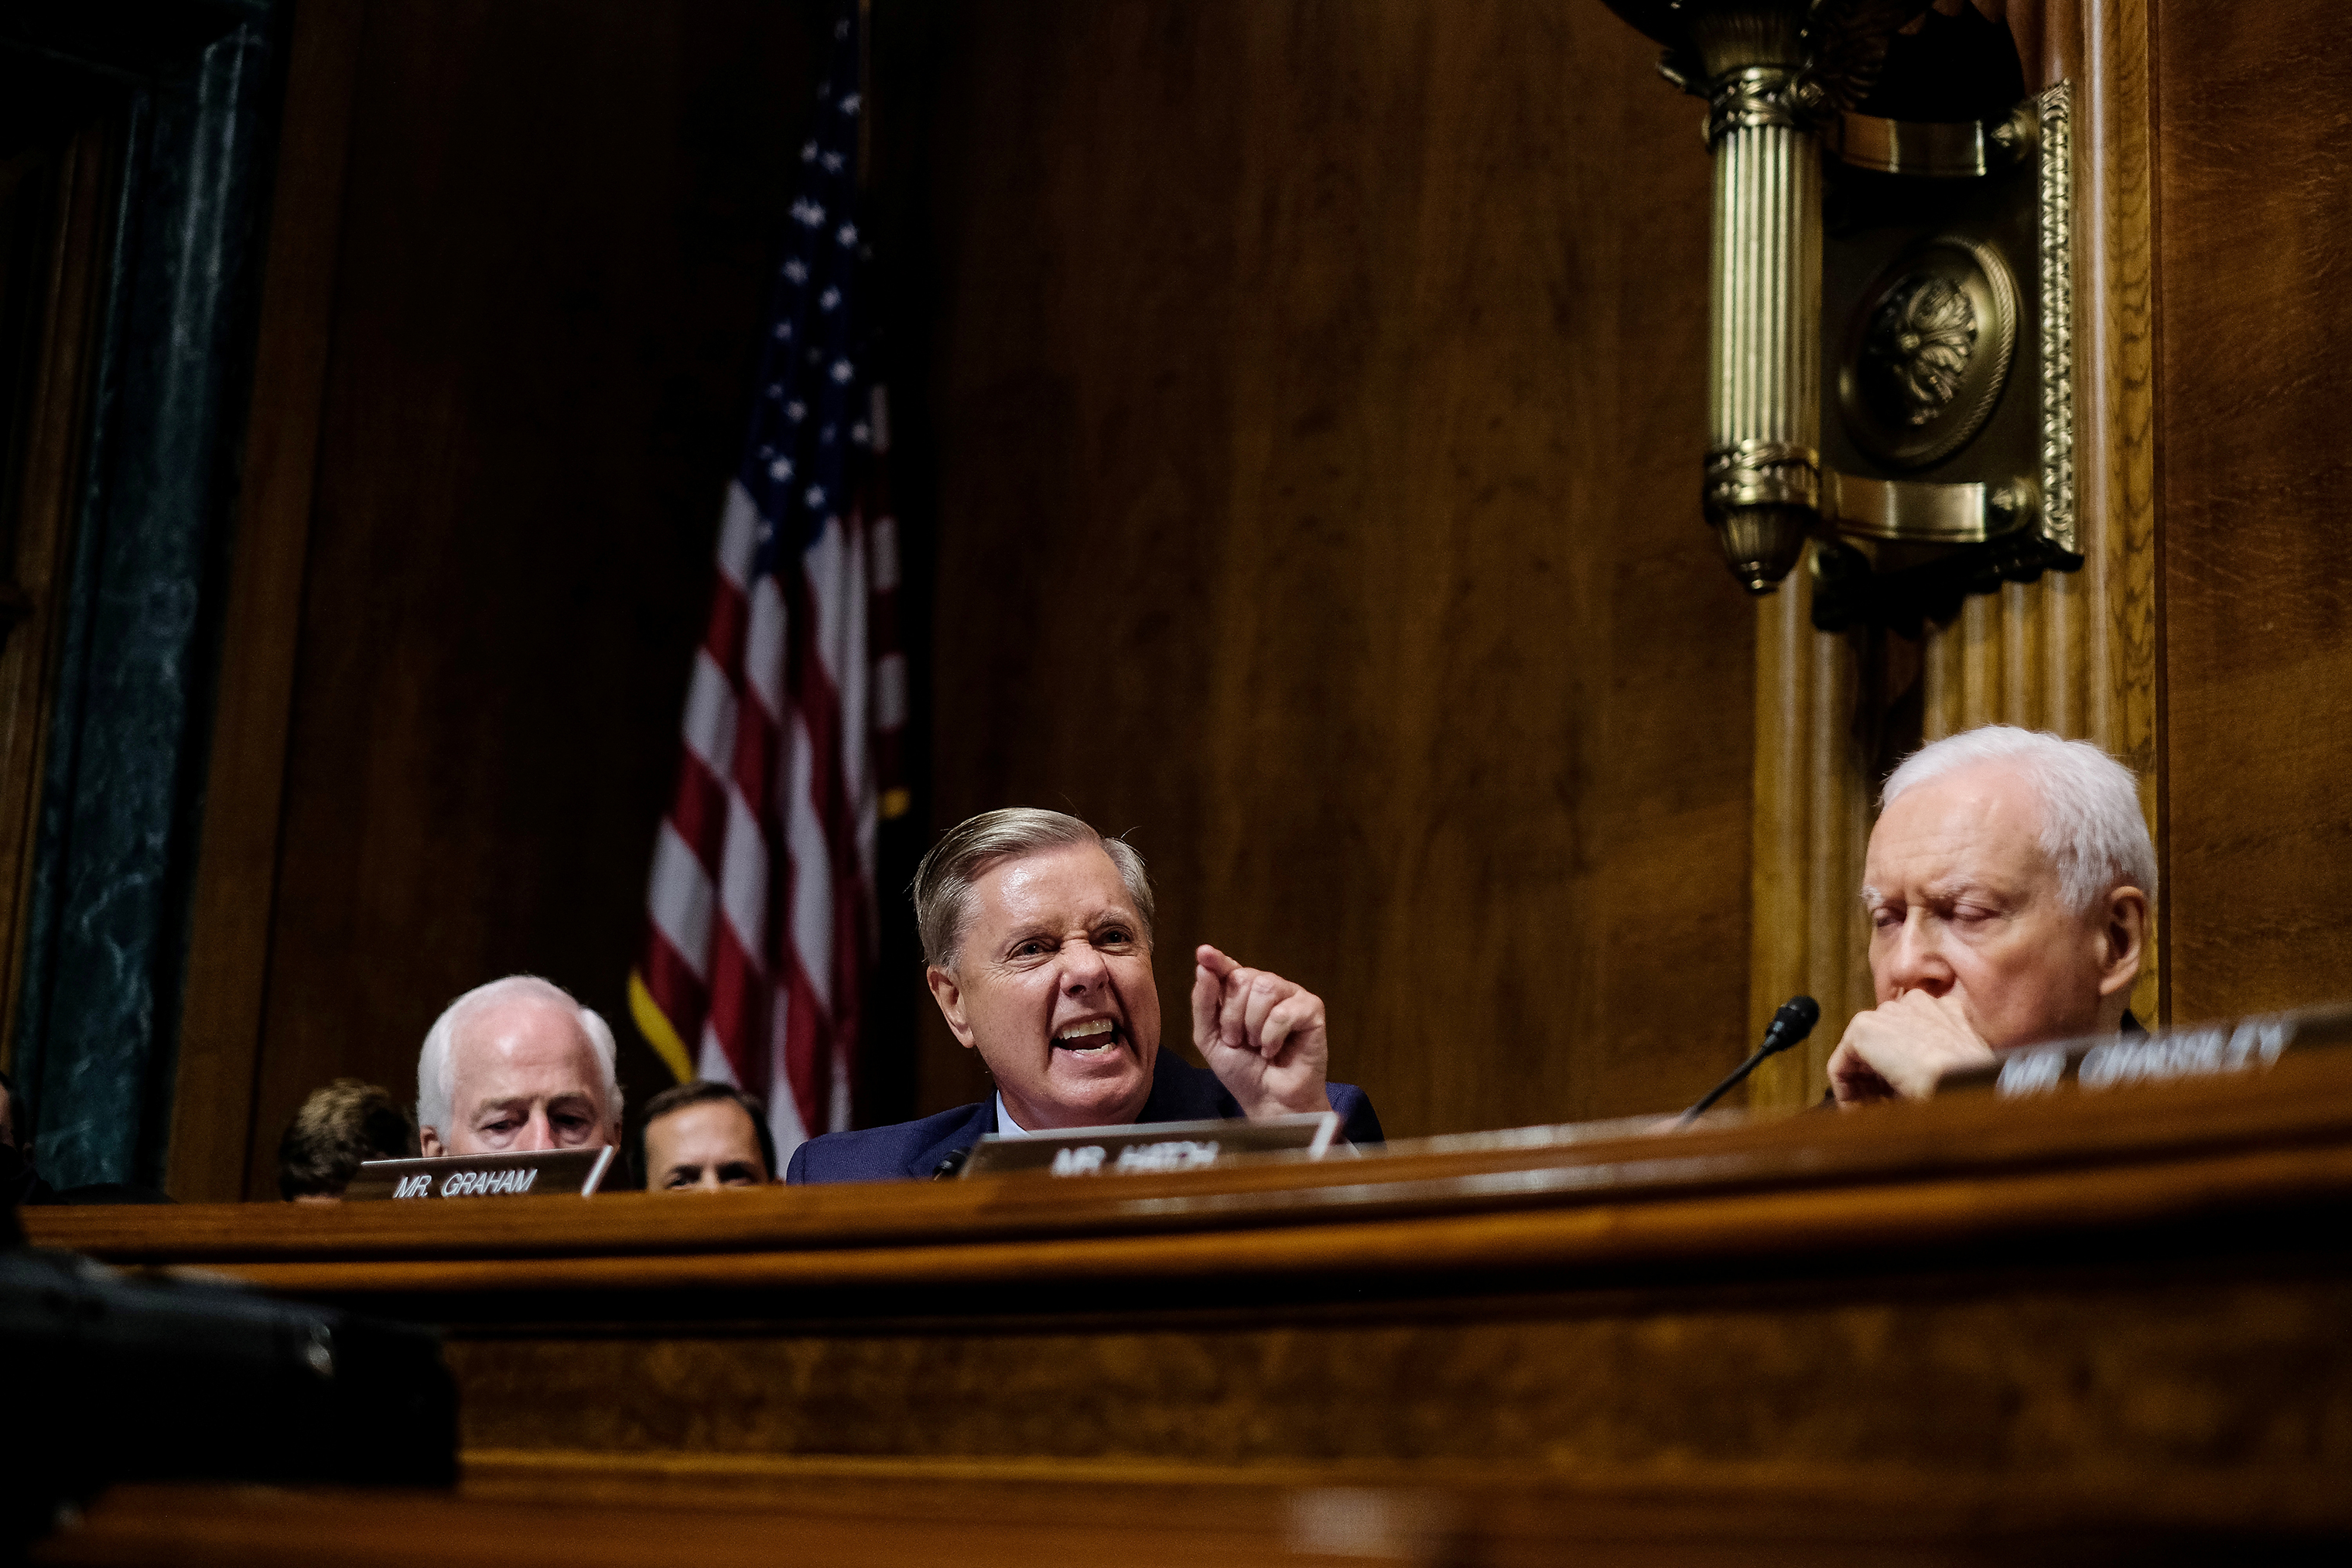 Sen. Lindsey Graham becomes angry during the questioning of Judge Brett Kavanaugh in front of the Senate Judiciary Committee on Sept. 27.